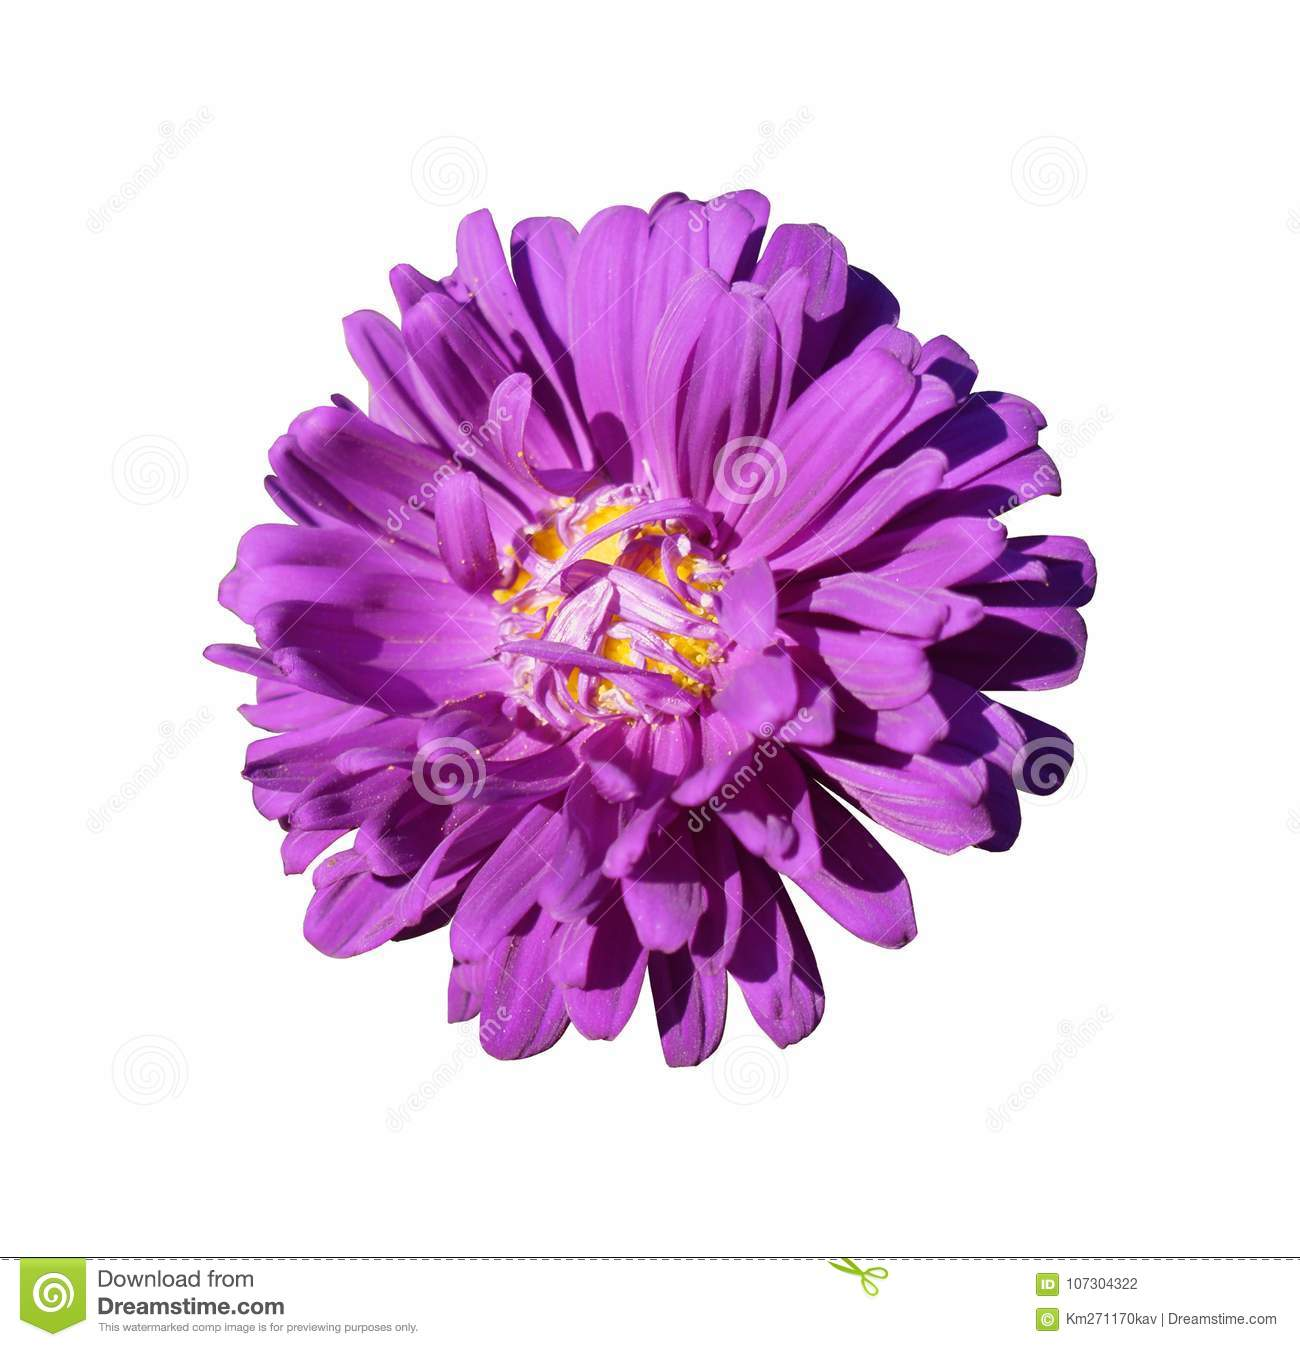 One purple with yellow center aster callistephus flower isolated one purple with yellow center aster callistephus flower isolated on white mightylinksfo